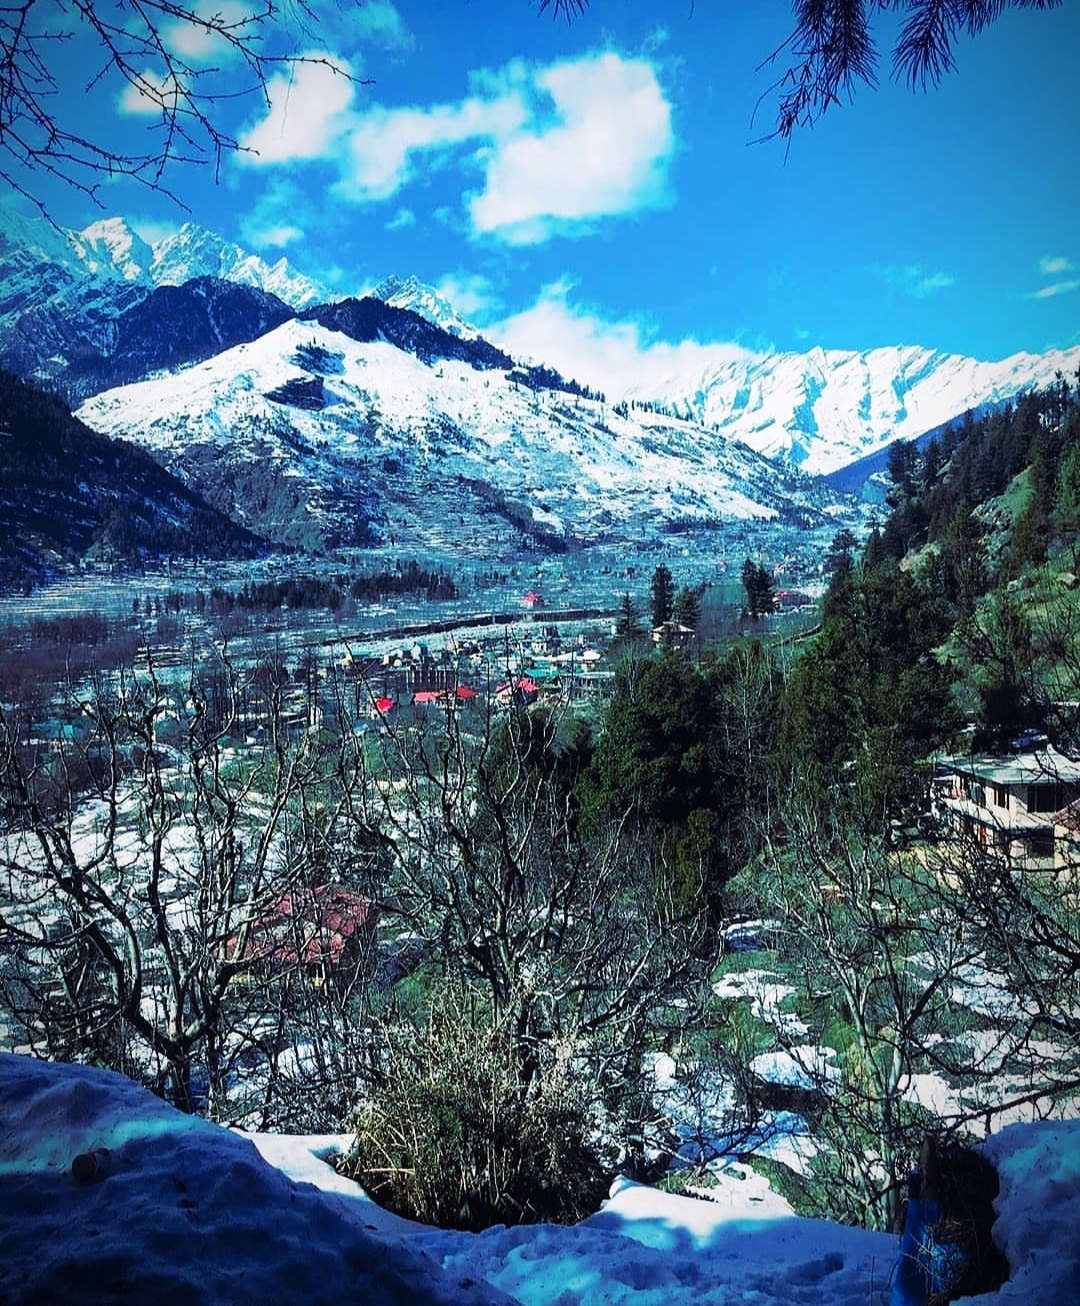 30+ Best Kullu Manali Images HD Download [2020] | Manali Travel Photos Himachal Pradesh